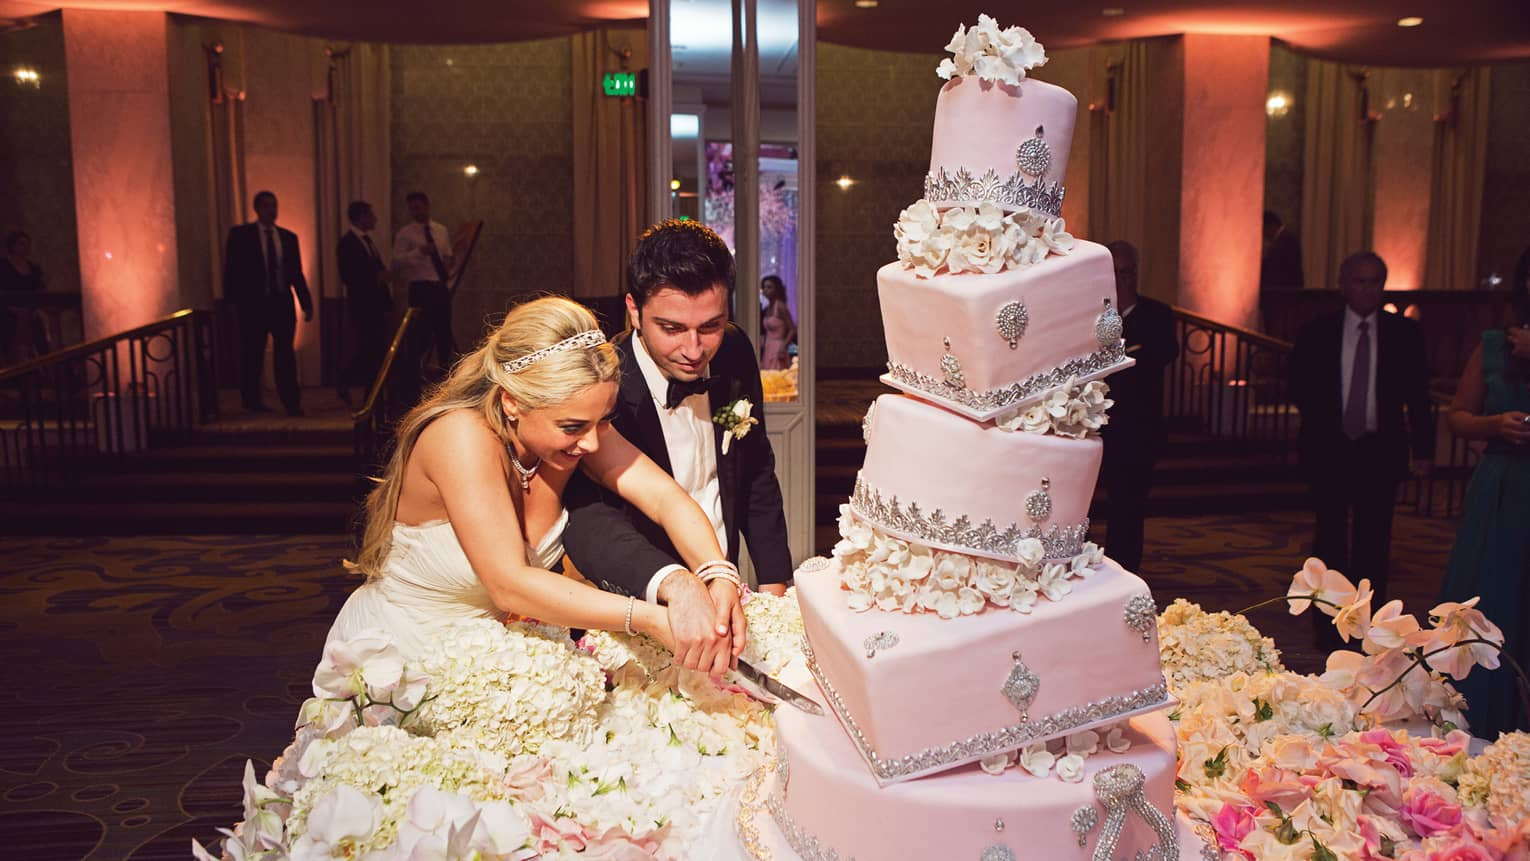 Bride and groom cut large, five tiered pink layer cake at wedding reception